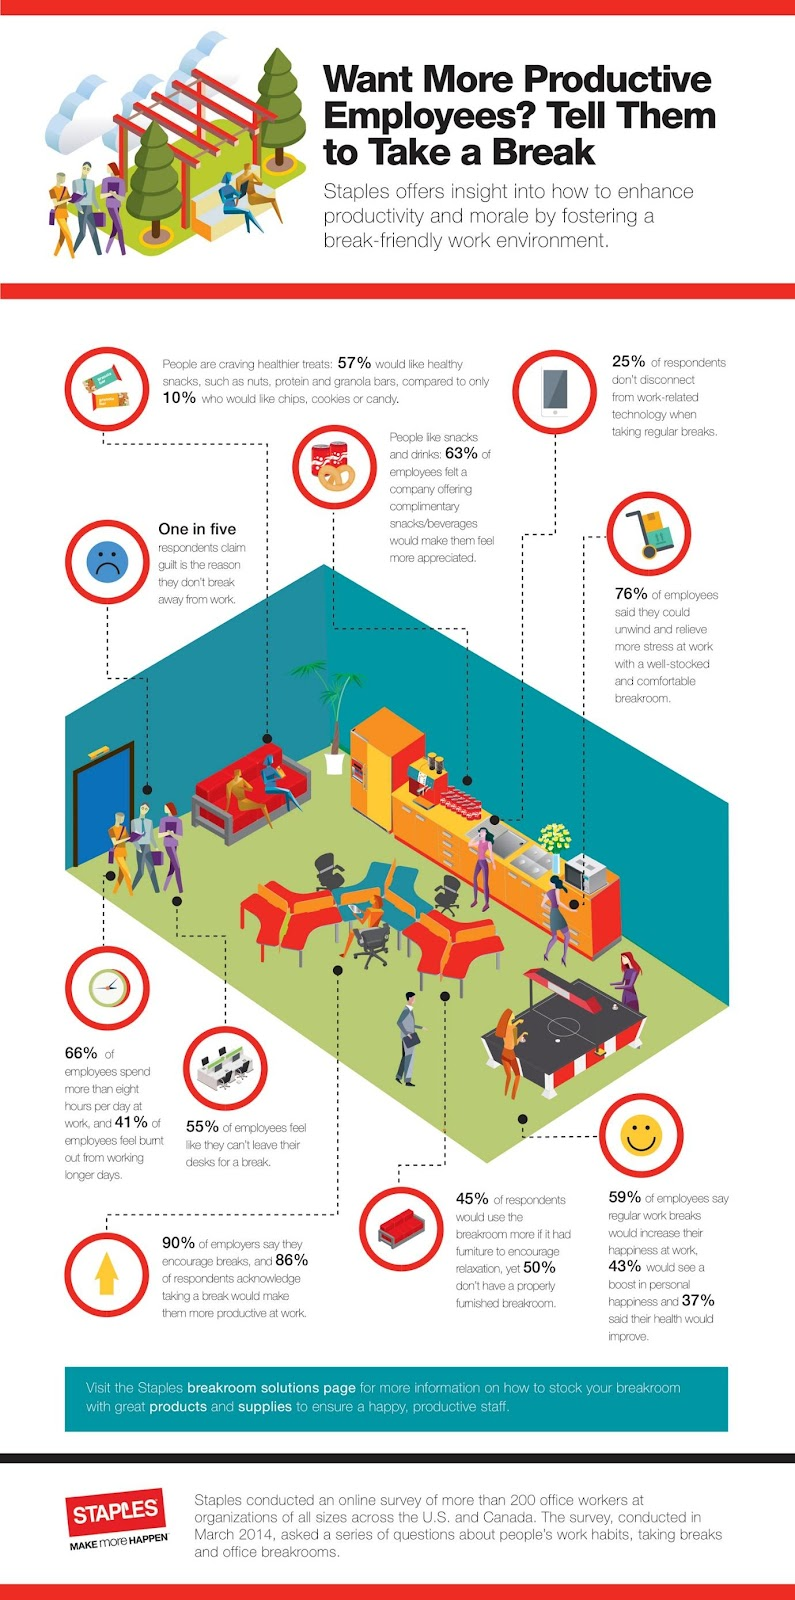 https://www.staples.com/sbd/cre/tech-services/images/res/breakroom-infographic-big.jpg